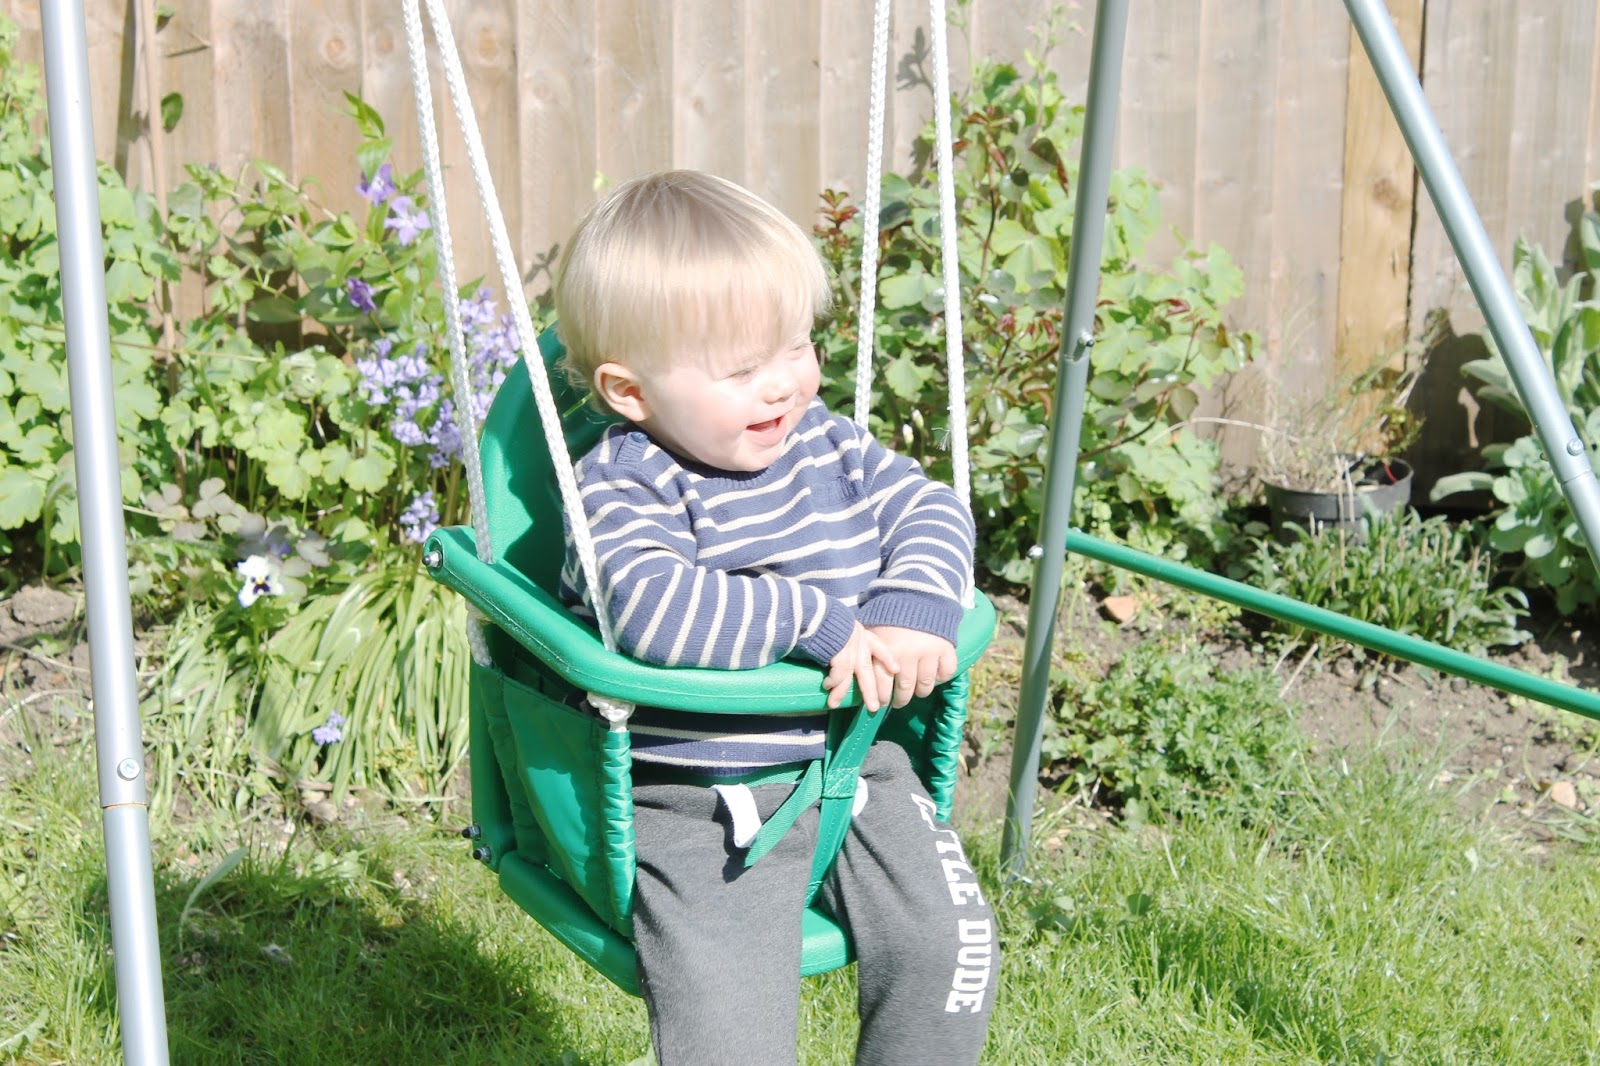 baby swing, toddler swing, 2-in-1 swing, outdoor toys, ball pit, baby ball pit, outdoor baby toys, sand pit, paddling pool for babies, trike, baby trike, little tikes trike, asda swing set,